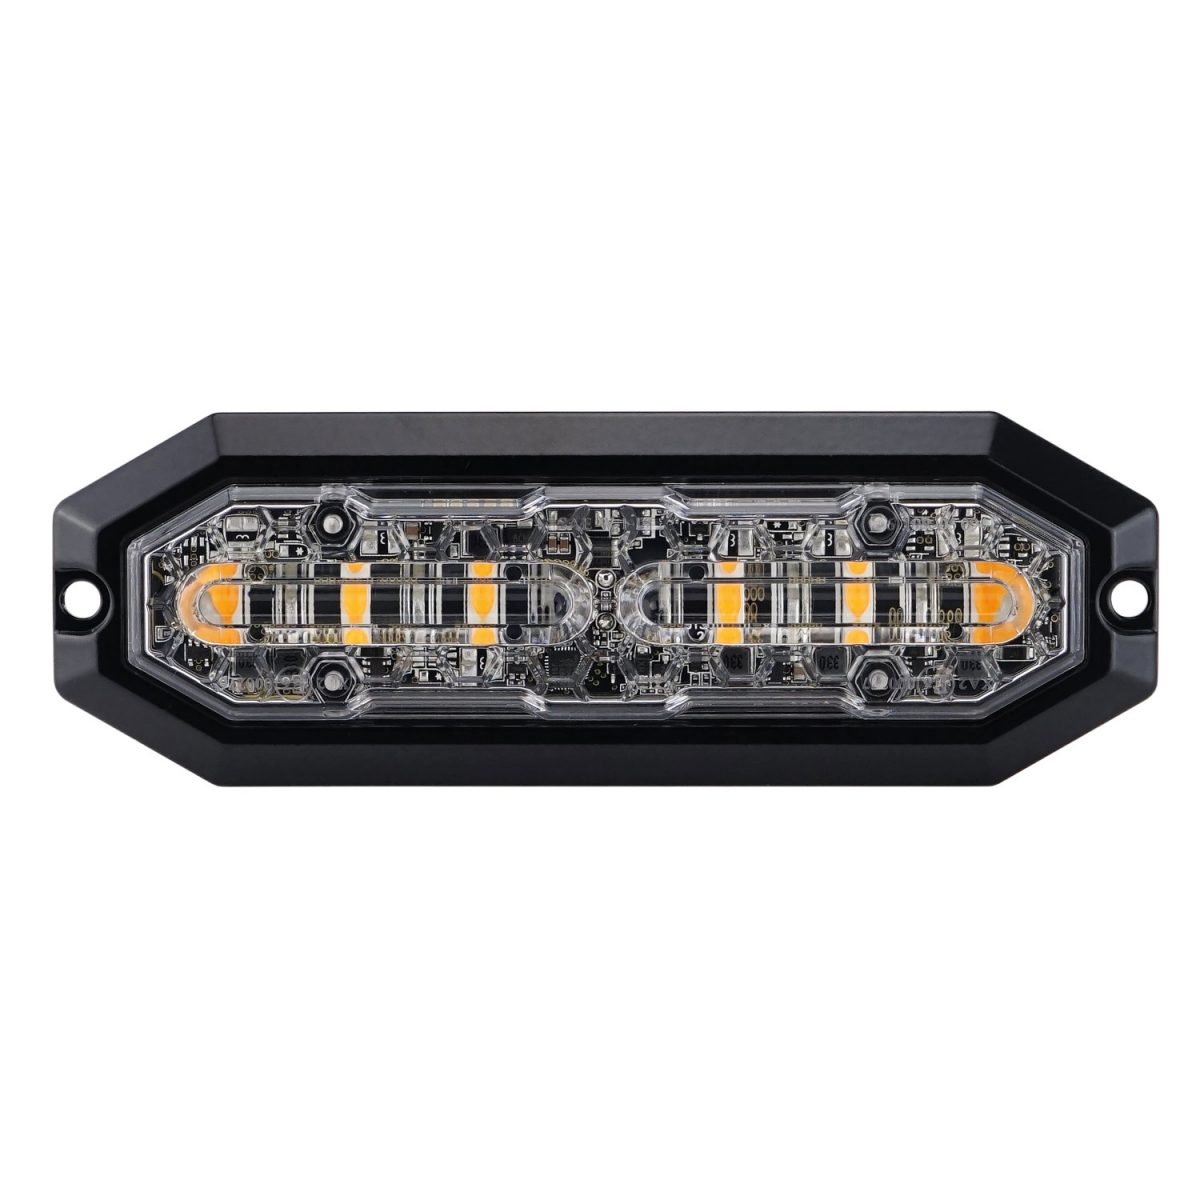 Strands Blixtljus 6 LED, 12-24V DC, 20W Orange LED, klar lins